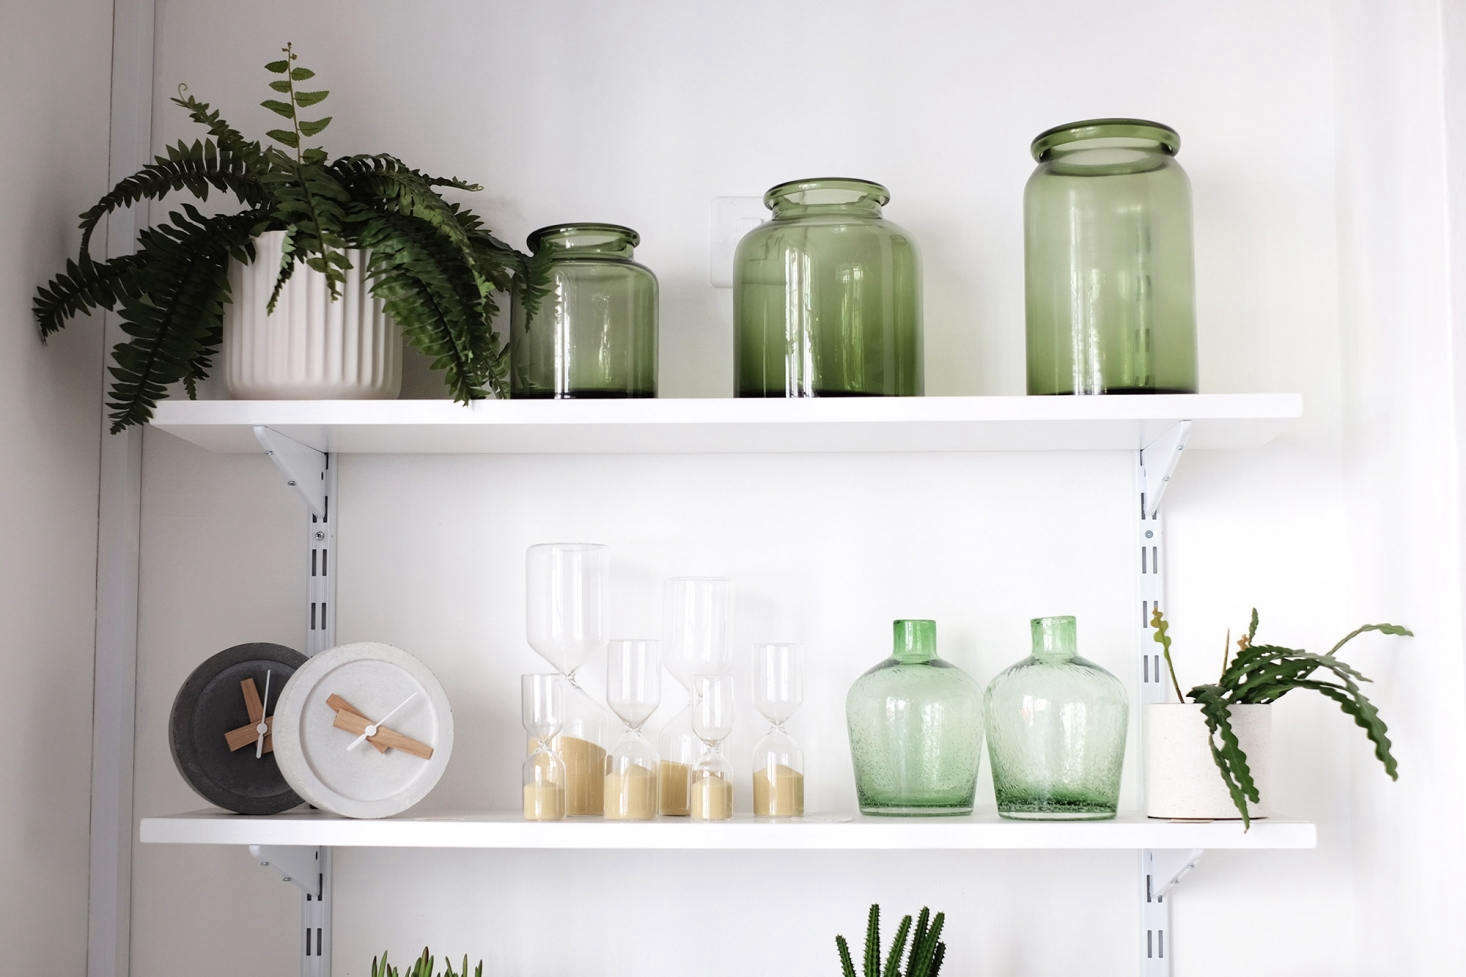 Hour Glasses (starting at £) and a green-themed vignette that includes Green Bottle Vases (£ each).